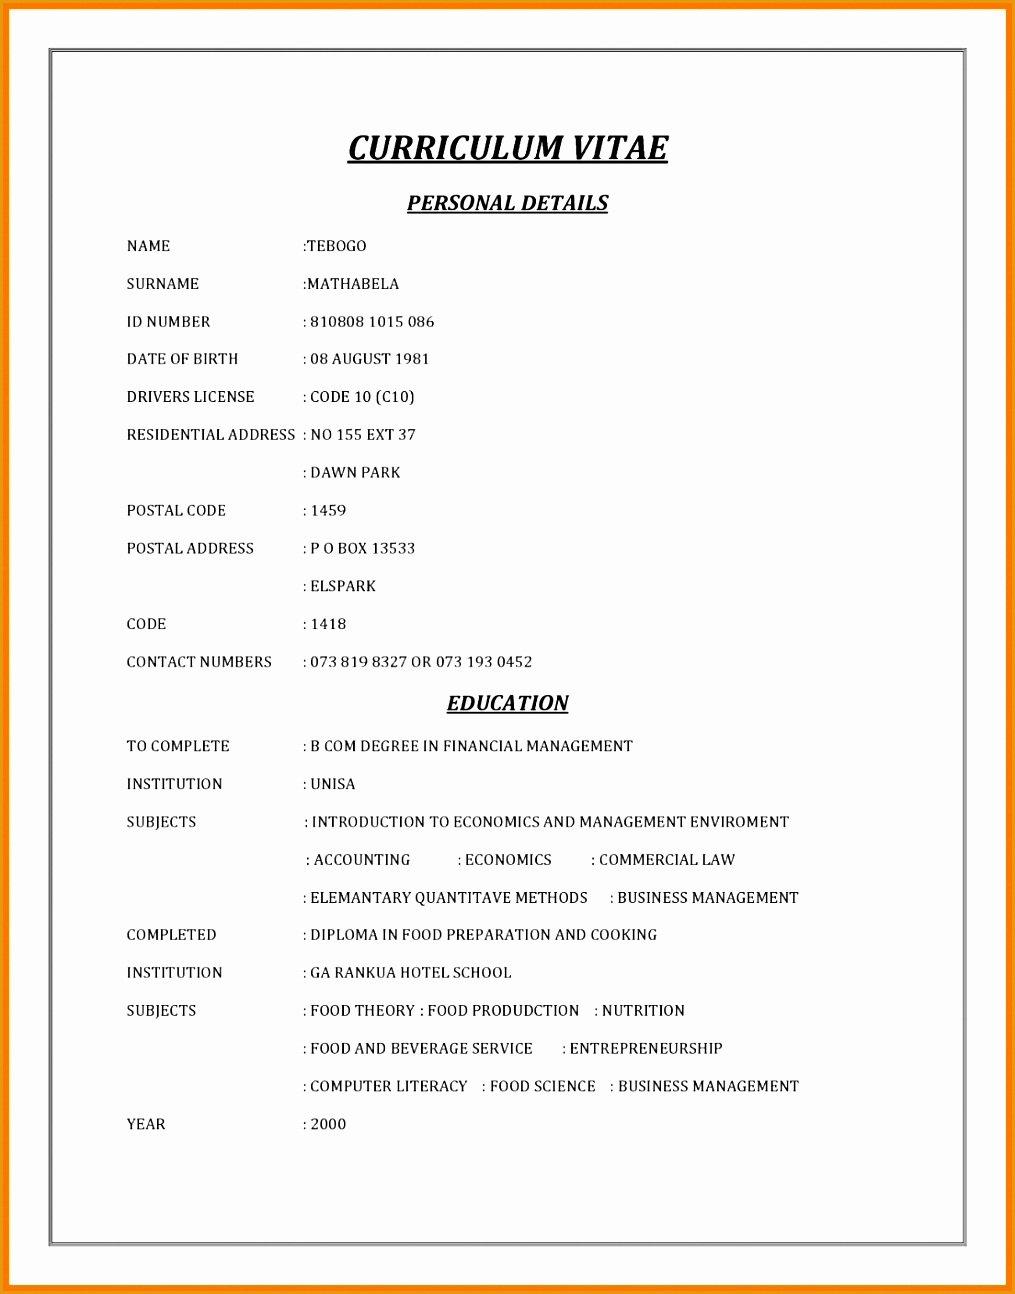 6 Cv Template In South Africa  Free Samples , Examples. Lebenslauf Europass Muster Download. Lebenslauf Vorlage Word Minijob. Cv Template Word Software Engineer. Lebenslauf Lehrstelle Vorlage Word. Funktionaler Lebenslauf Modern. Cv Design Editable. Lebenslauf Praktikum Was Muss Rein. Lebenslauf Adolf Hitler Pdf